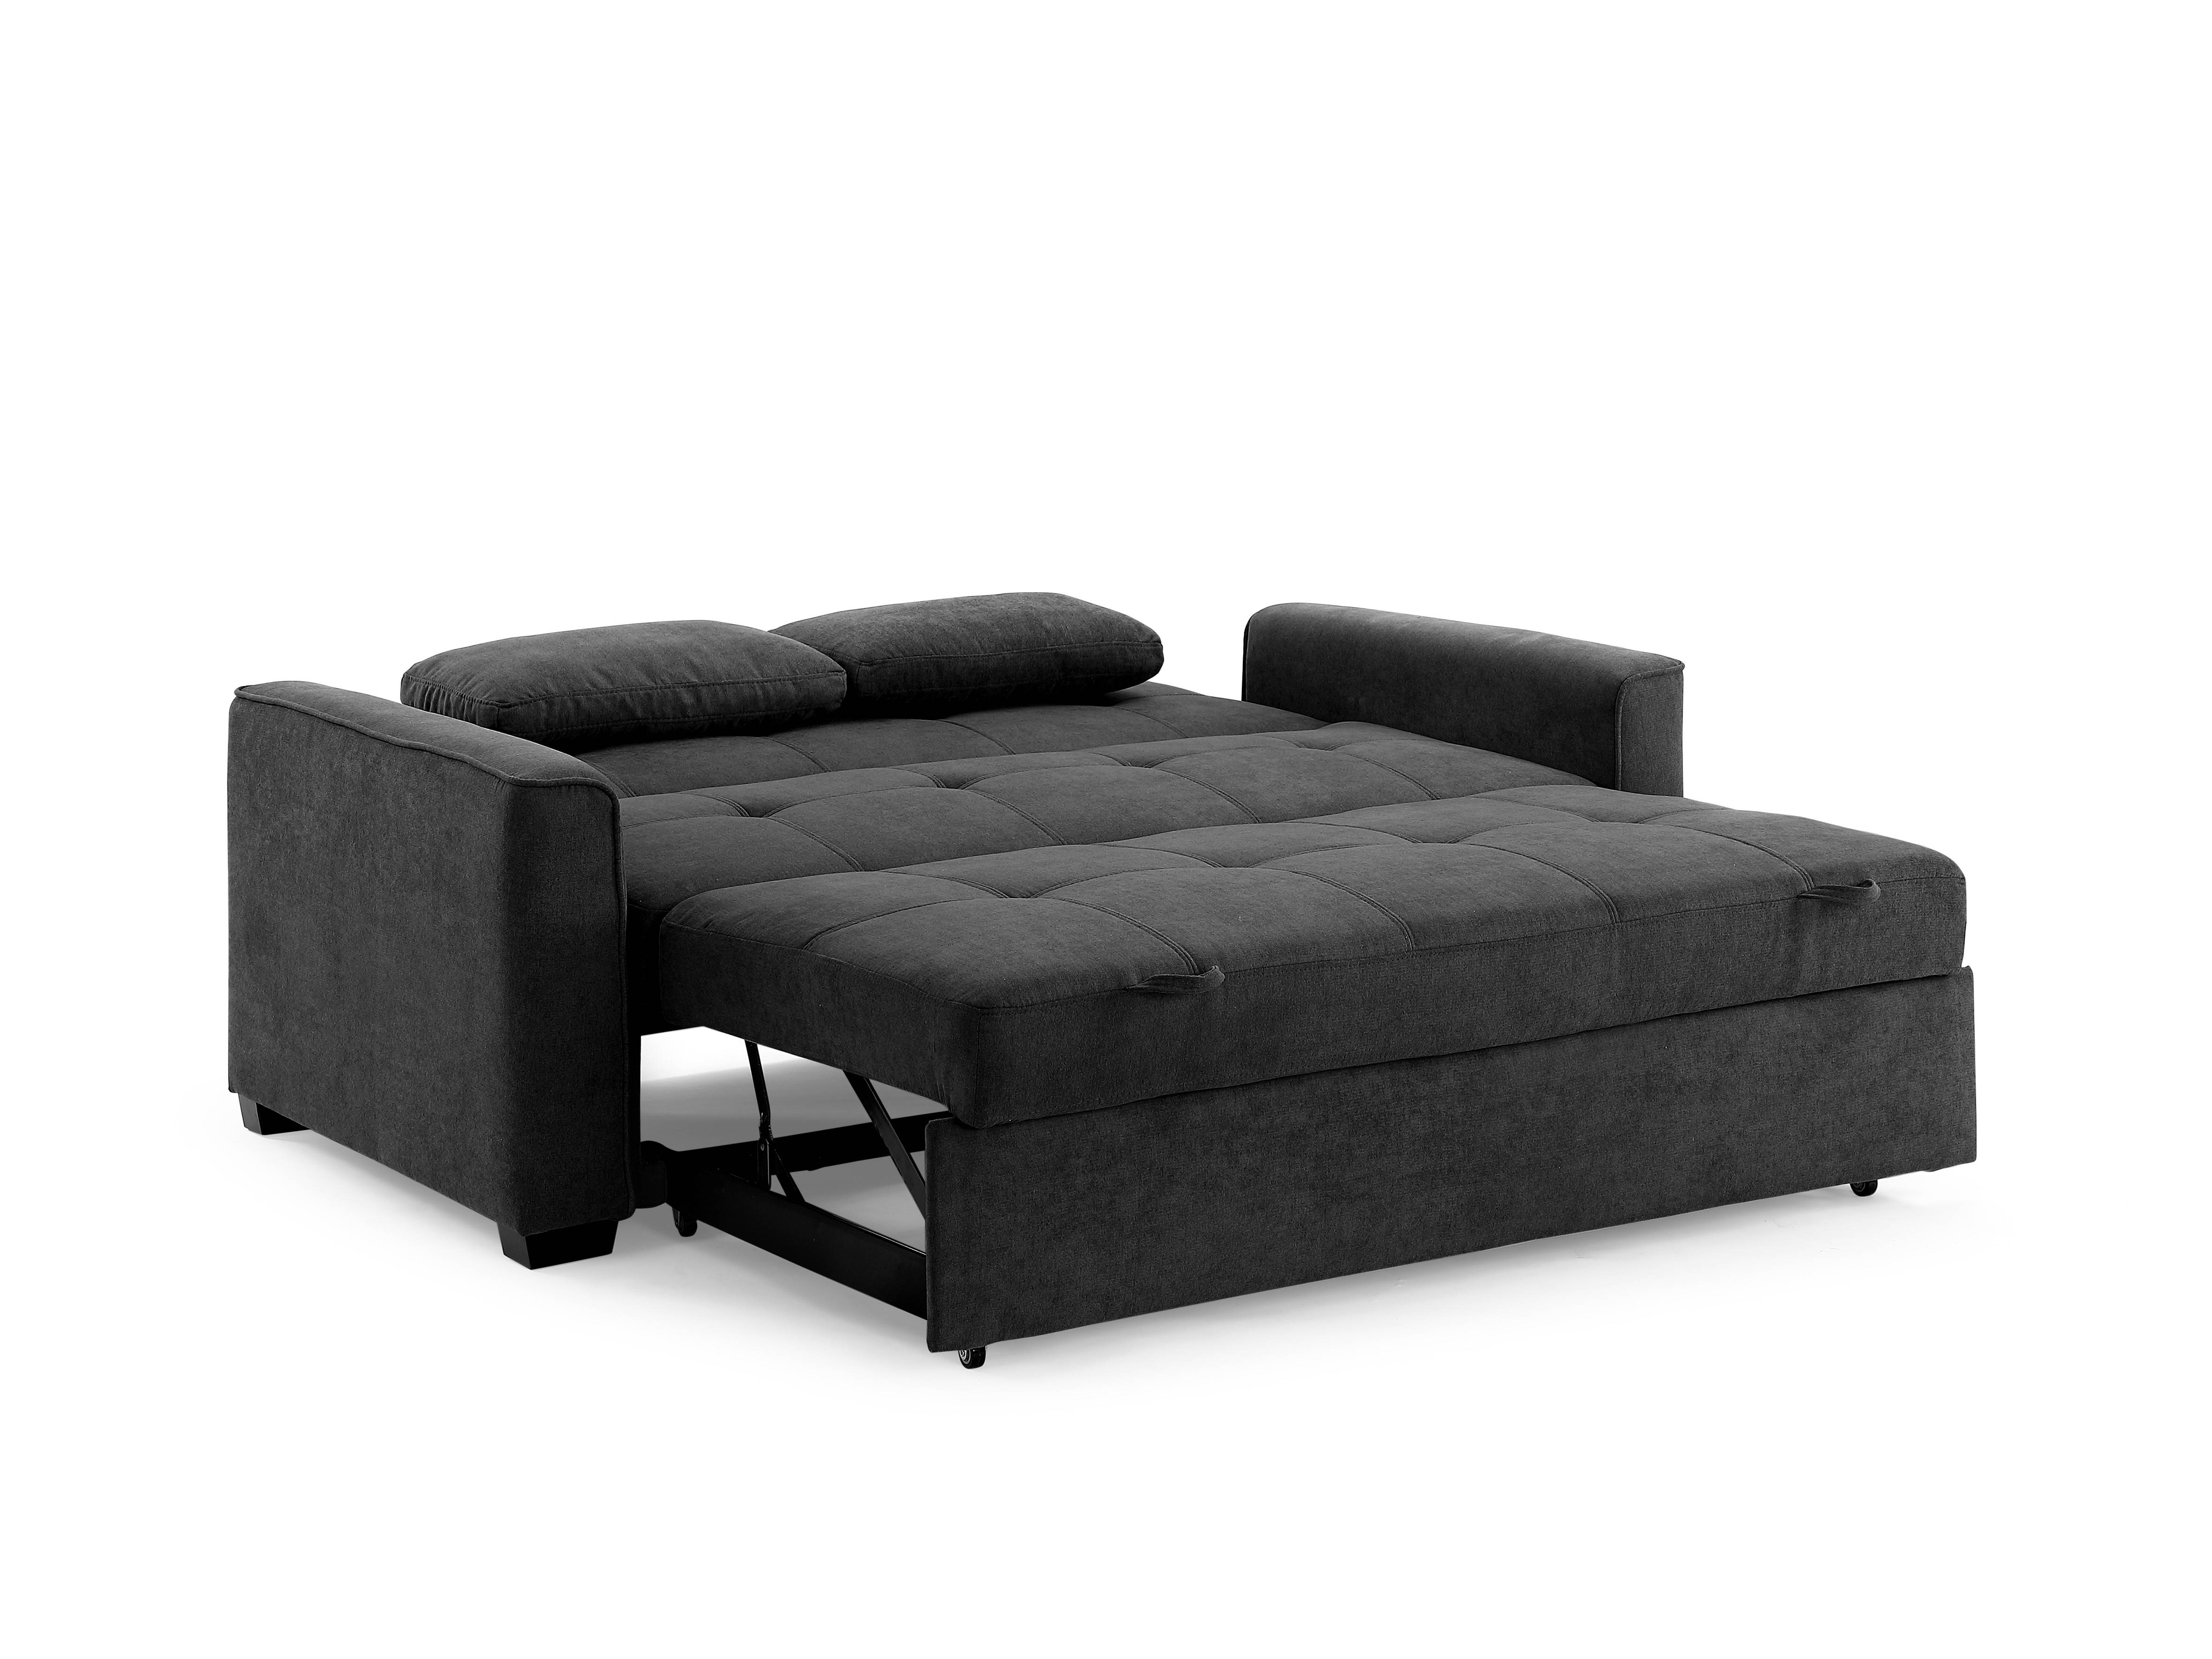 Awesome Night And Day Furniture Nantucket Charcoal Queen Sofa Bed Theyellowbook Wood Chair Design Ideas Theyellowbookinfo